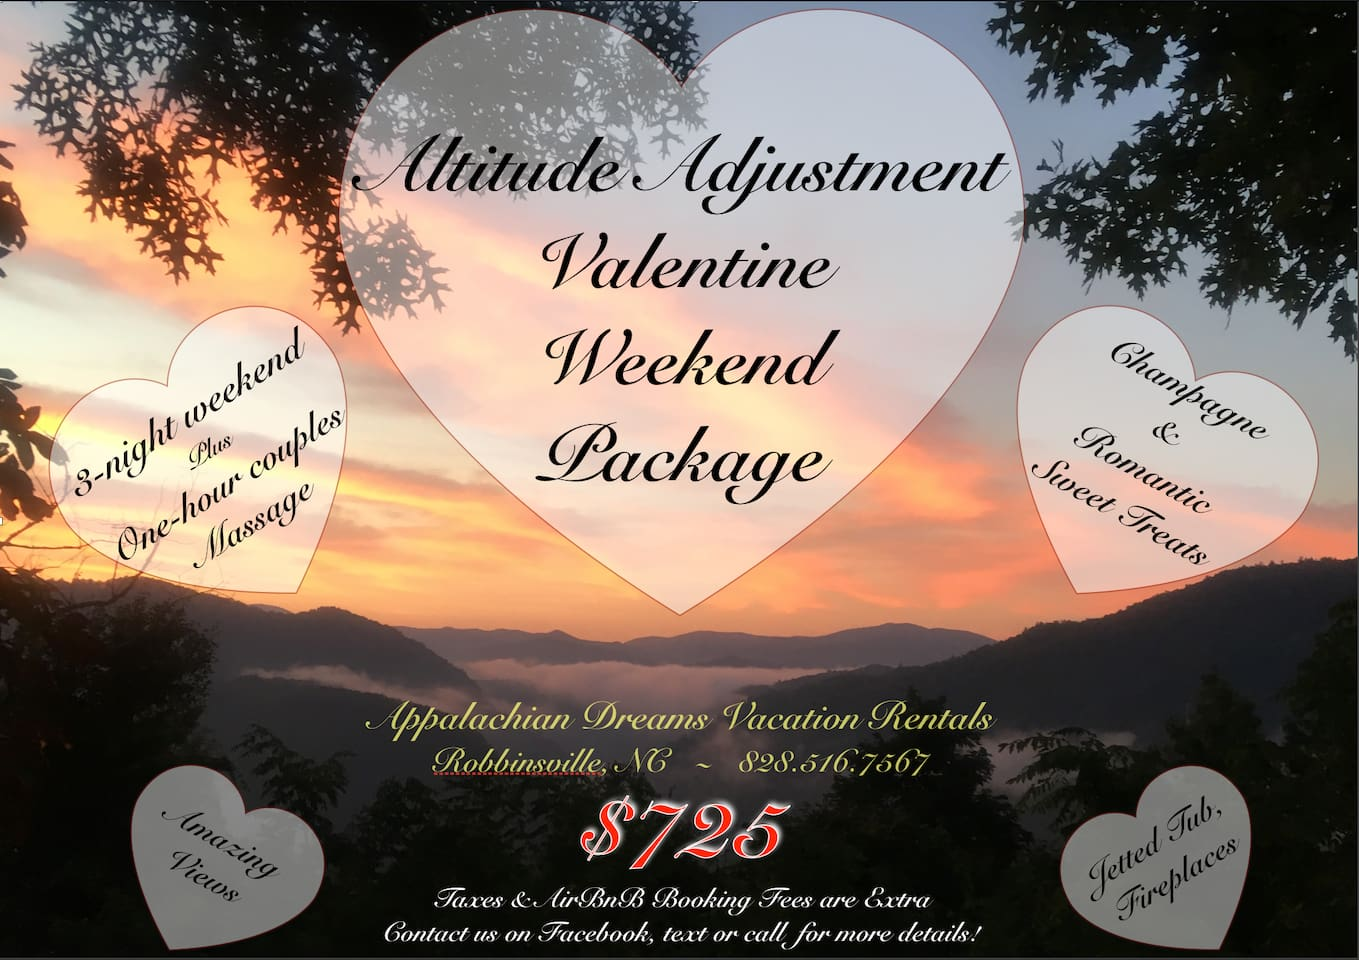 Valentine 2020 weekend package! Message us for more details & booking instructions!